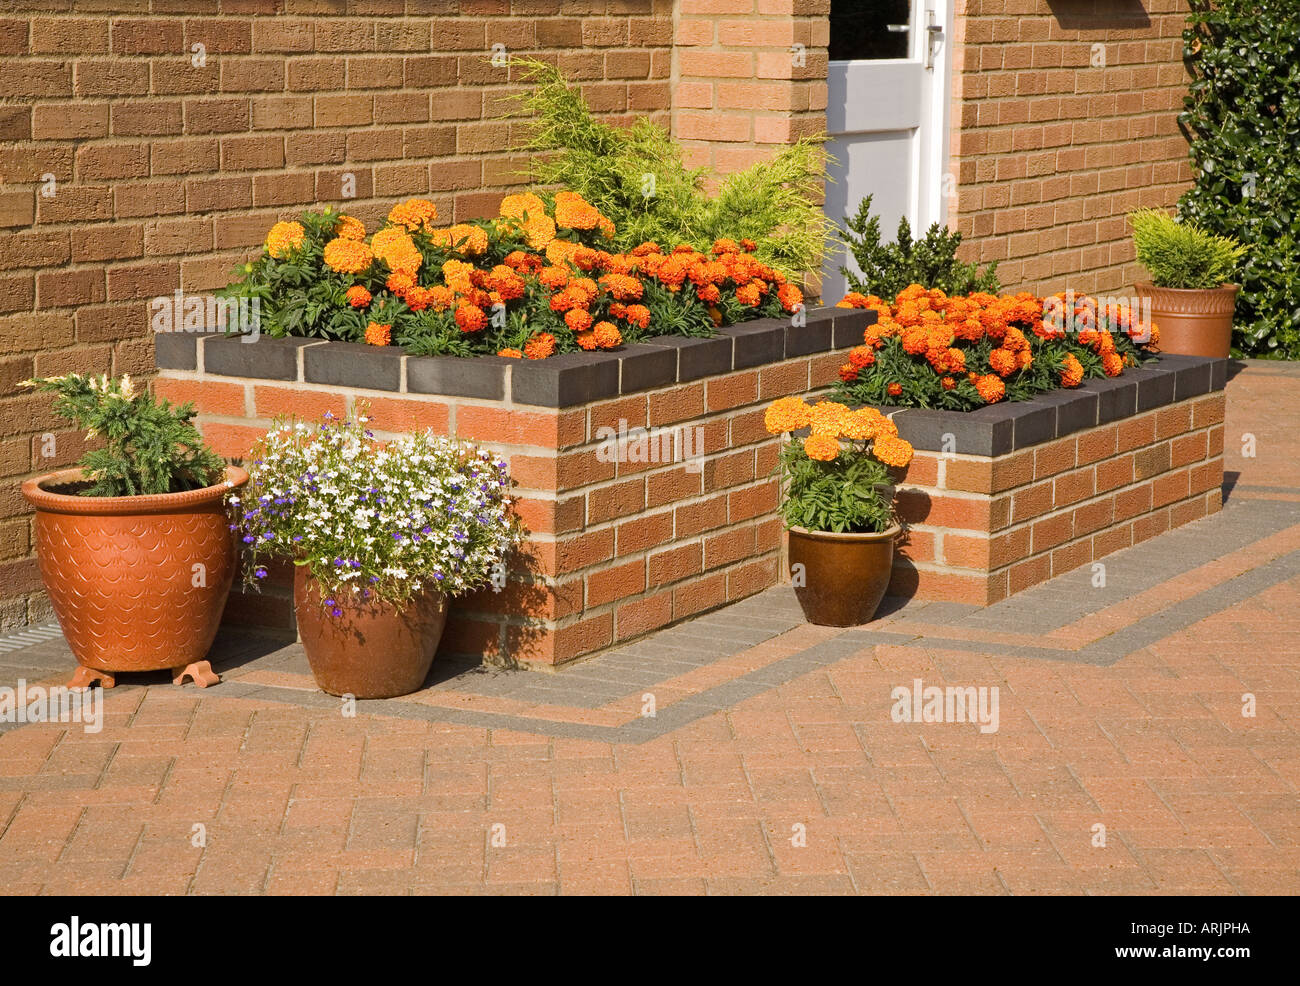 Summer flowers in a raised bed with pots on a patio - Stock Image